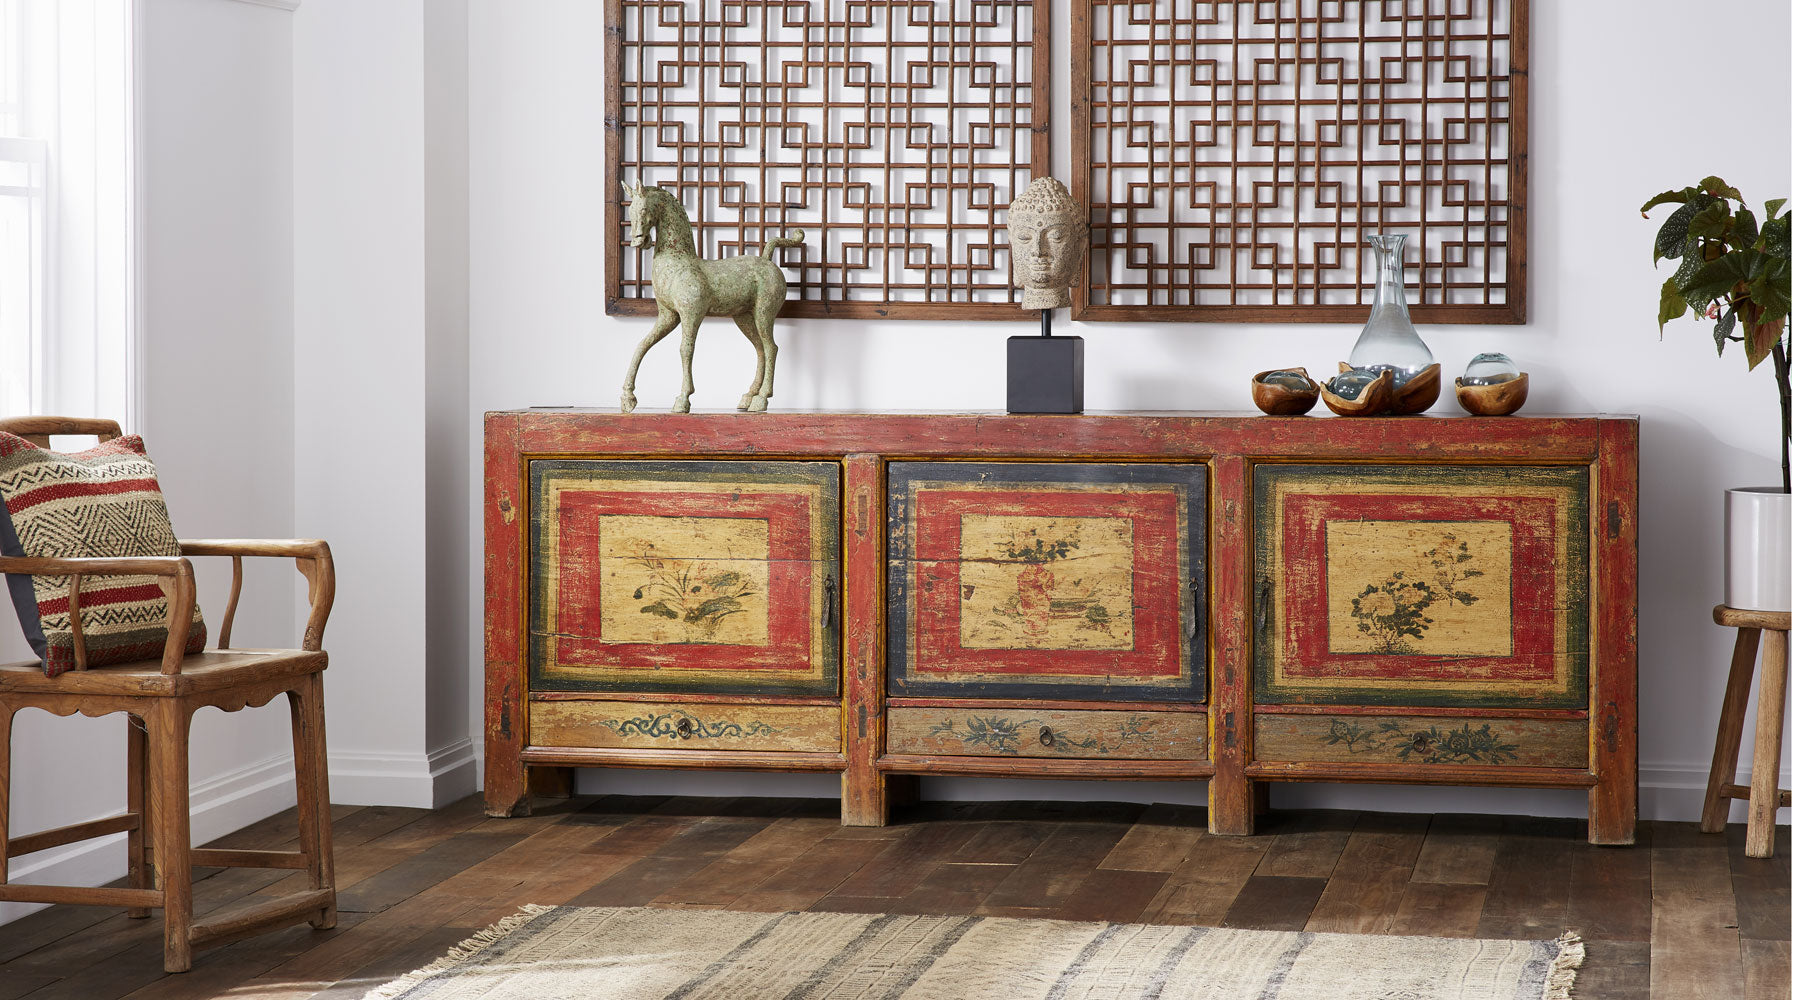 Large Painted Sideboard from Qinghai Province